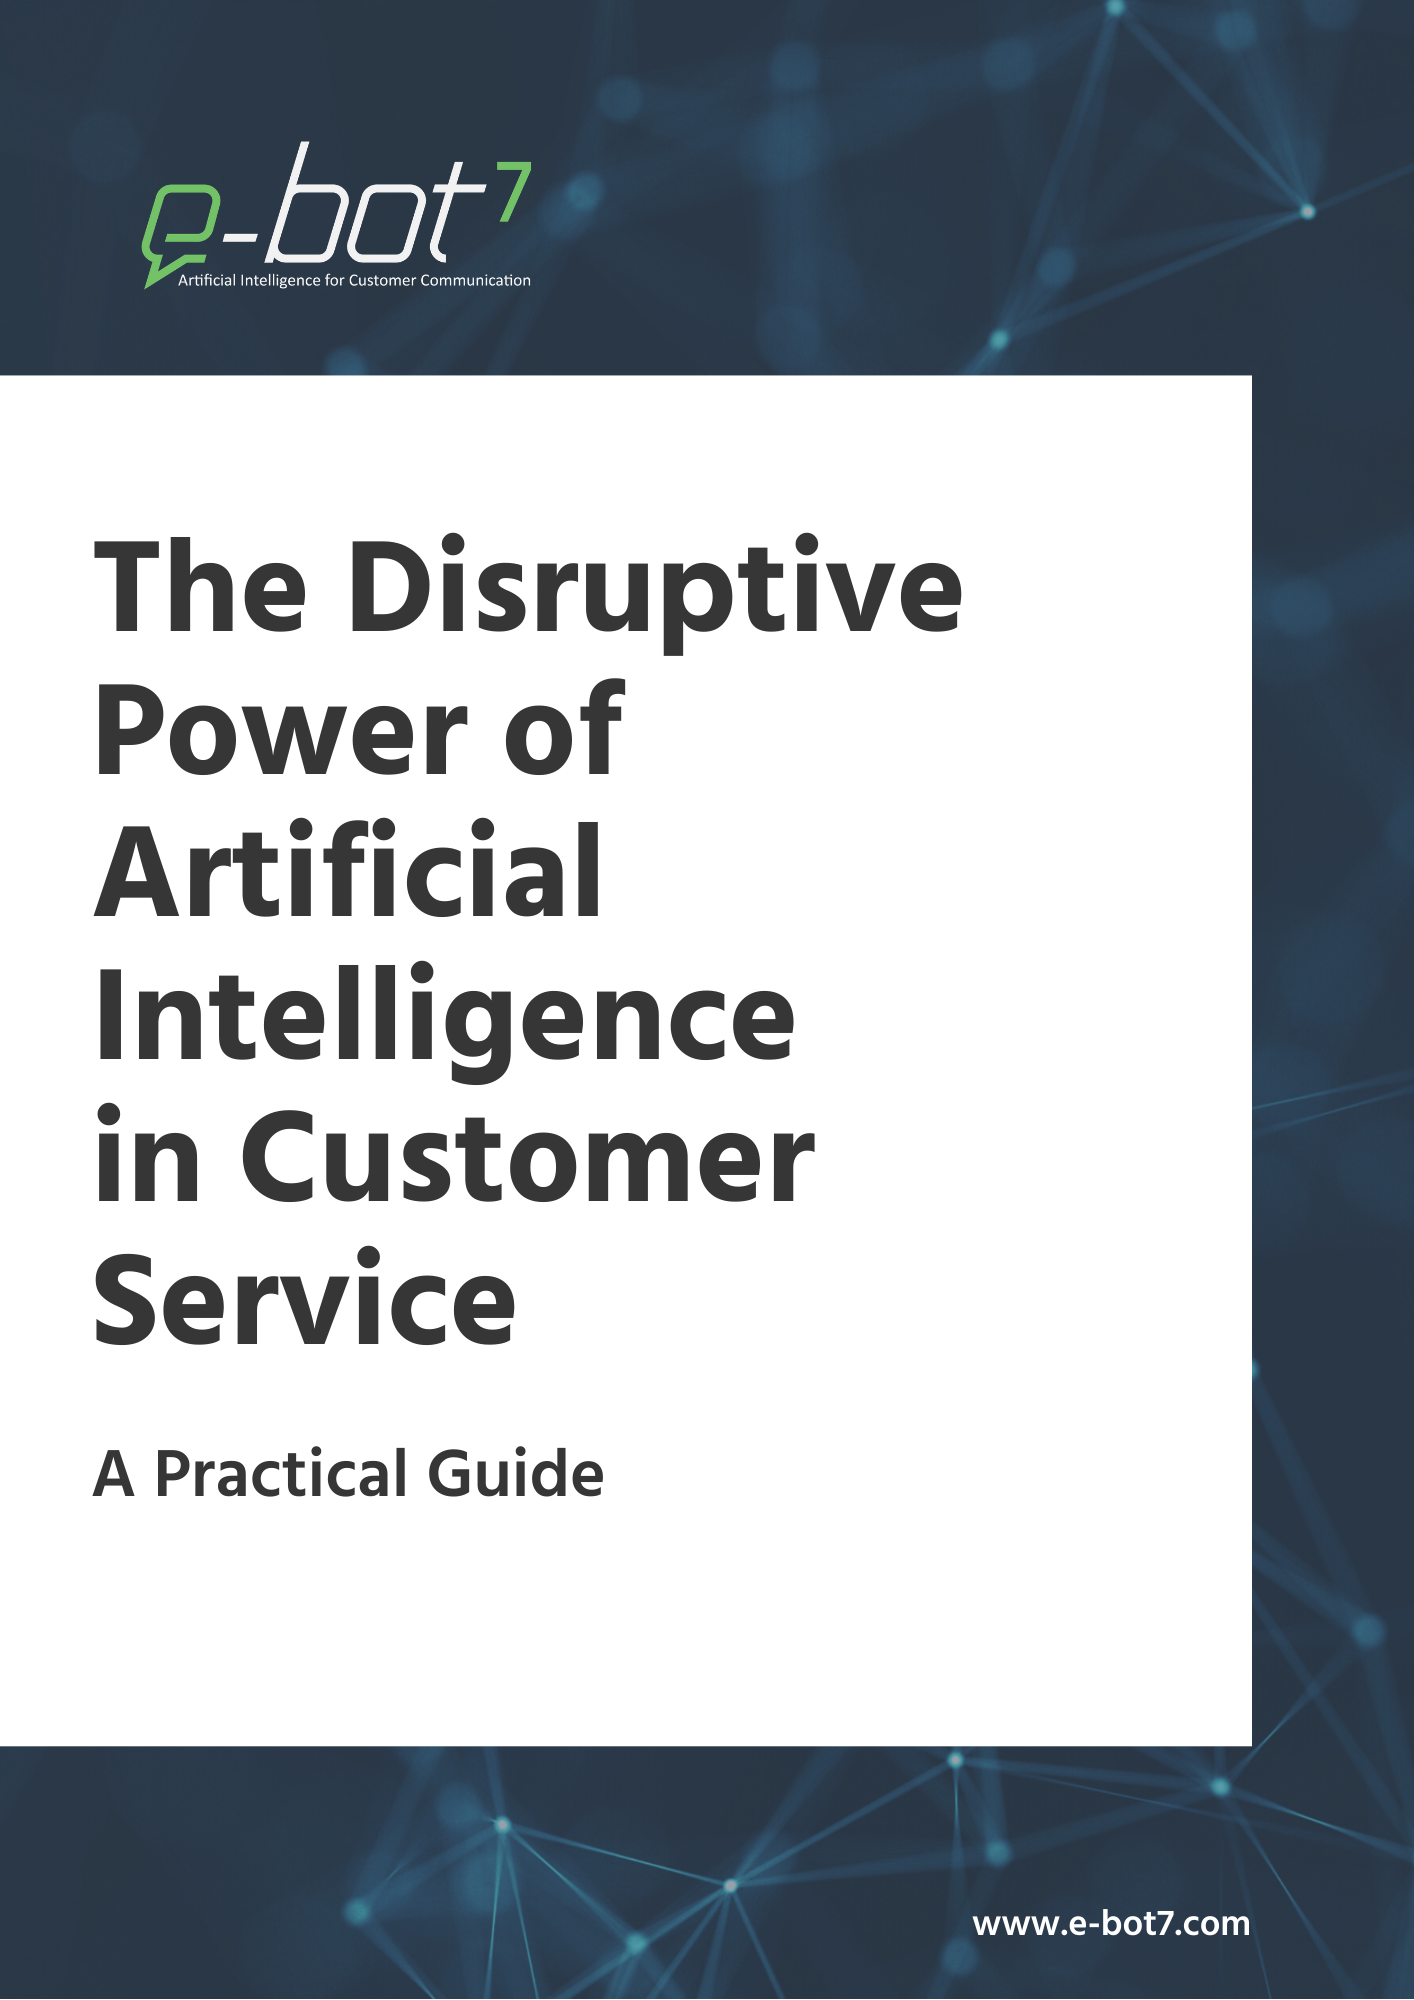 E-book The Disruptive Power of Artificial Intelligence in Customer Service